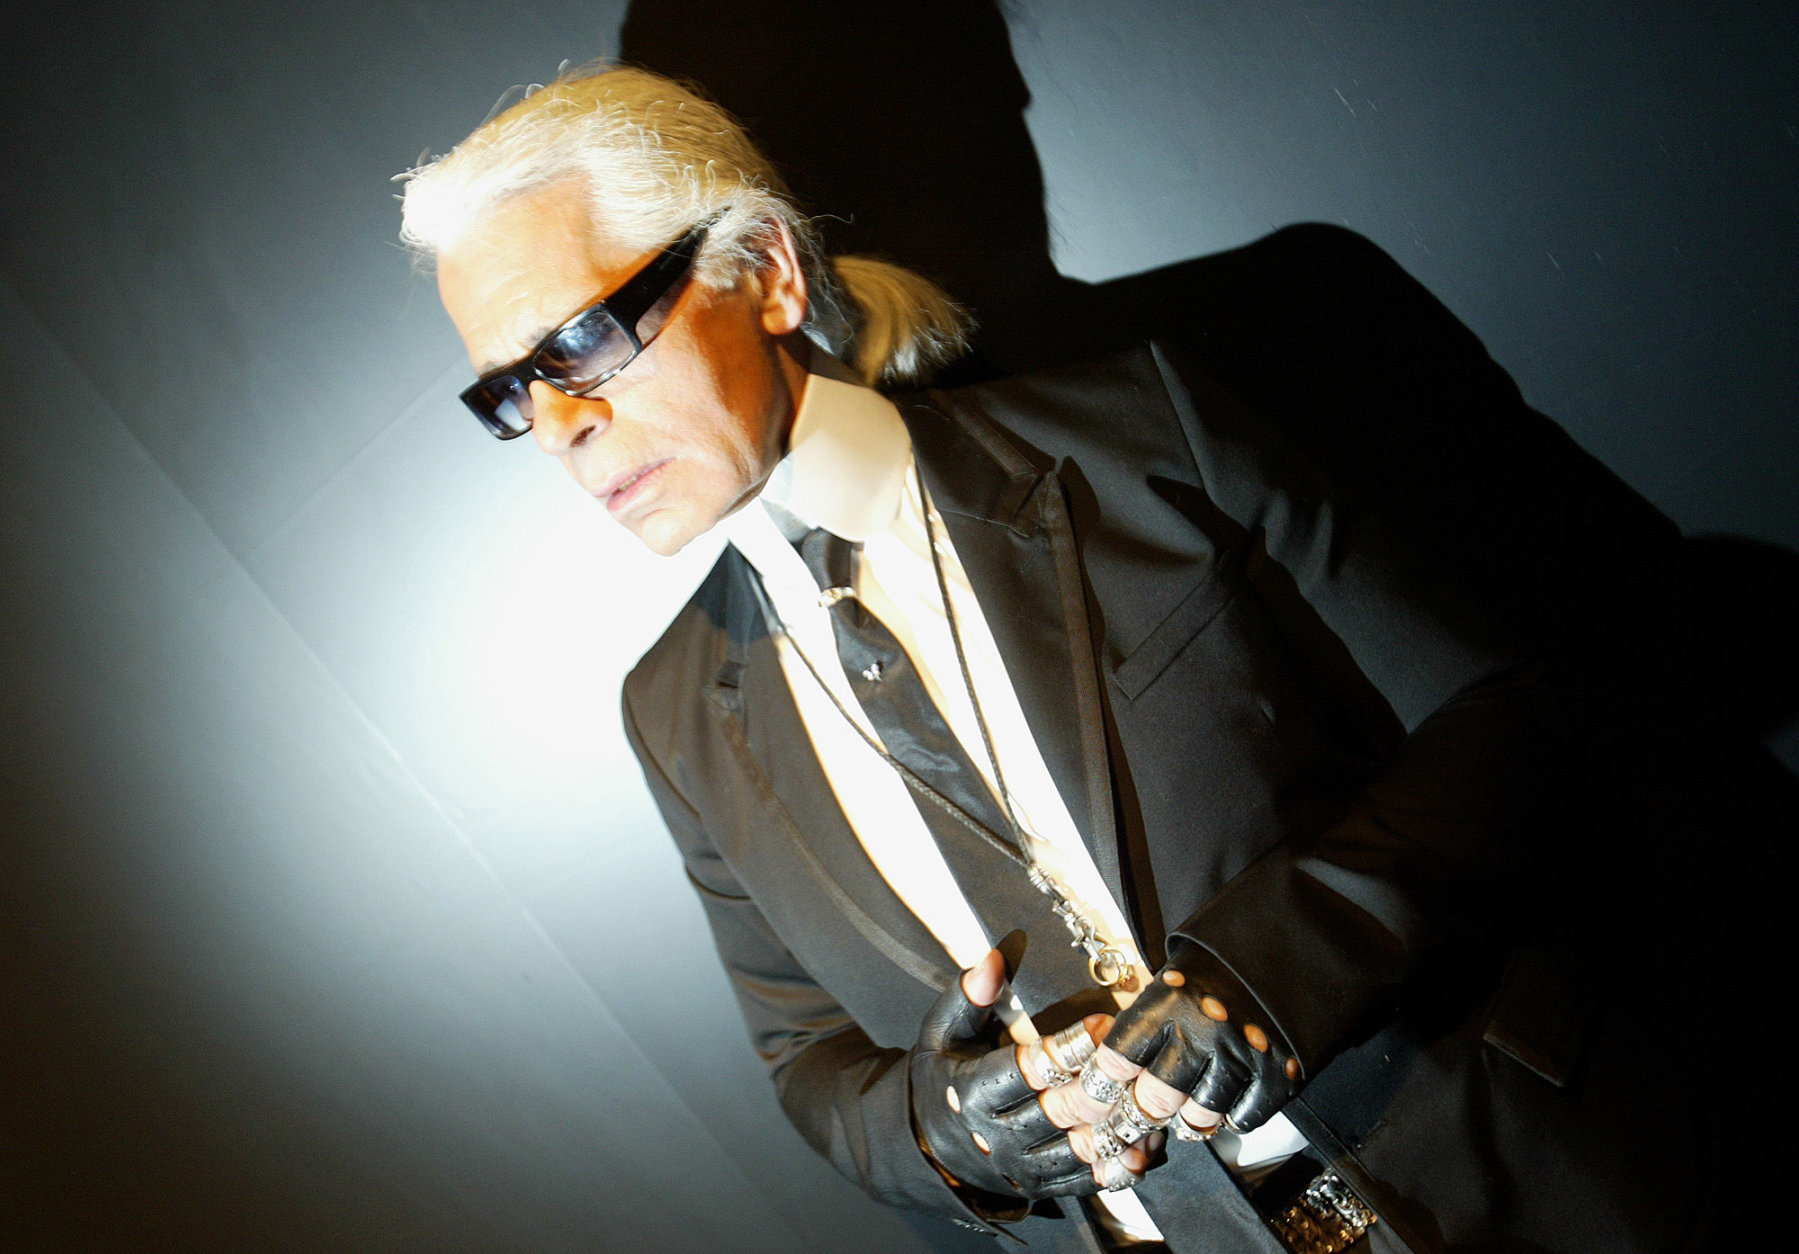 German Fashion designer Karl Lagerfeld is seen backstage during the presentation of Chanel's spring-summer 2005 haute couture fashion collection presented in Paris Tuesday Jan. 25, 2005.(AP Photo/Jerome Delay)